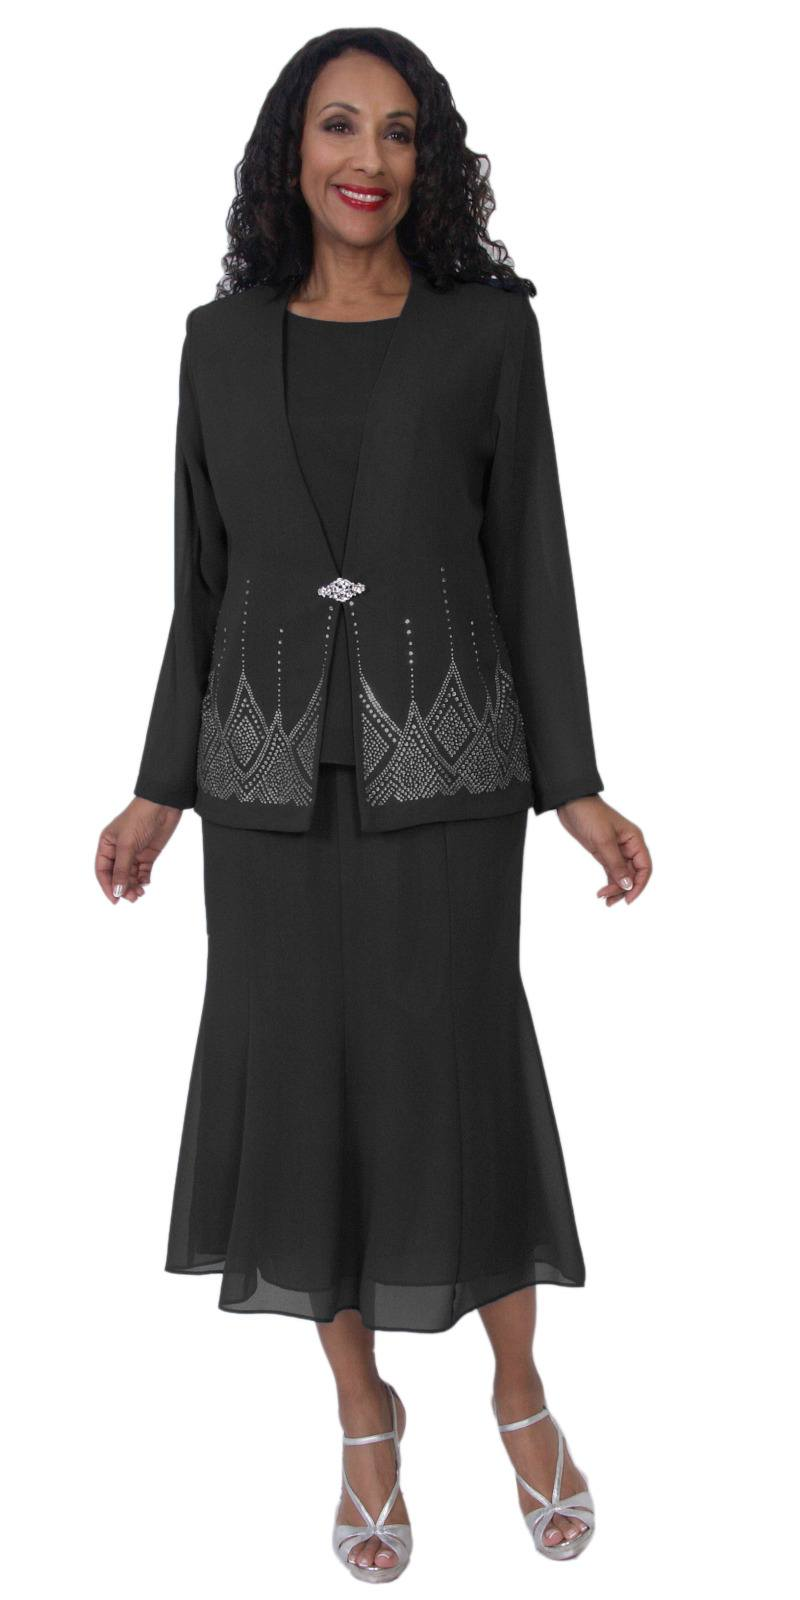 415fb436237 Hosanna 5115 Plus Size 3 Piece Set Black Tea Length Dress ...